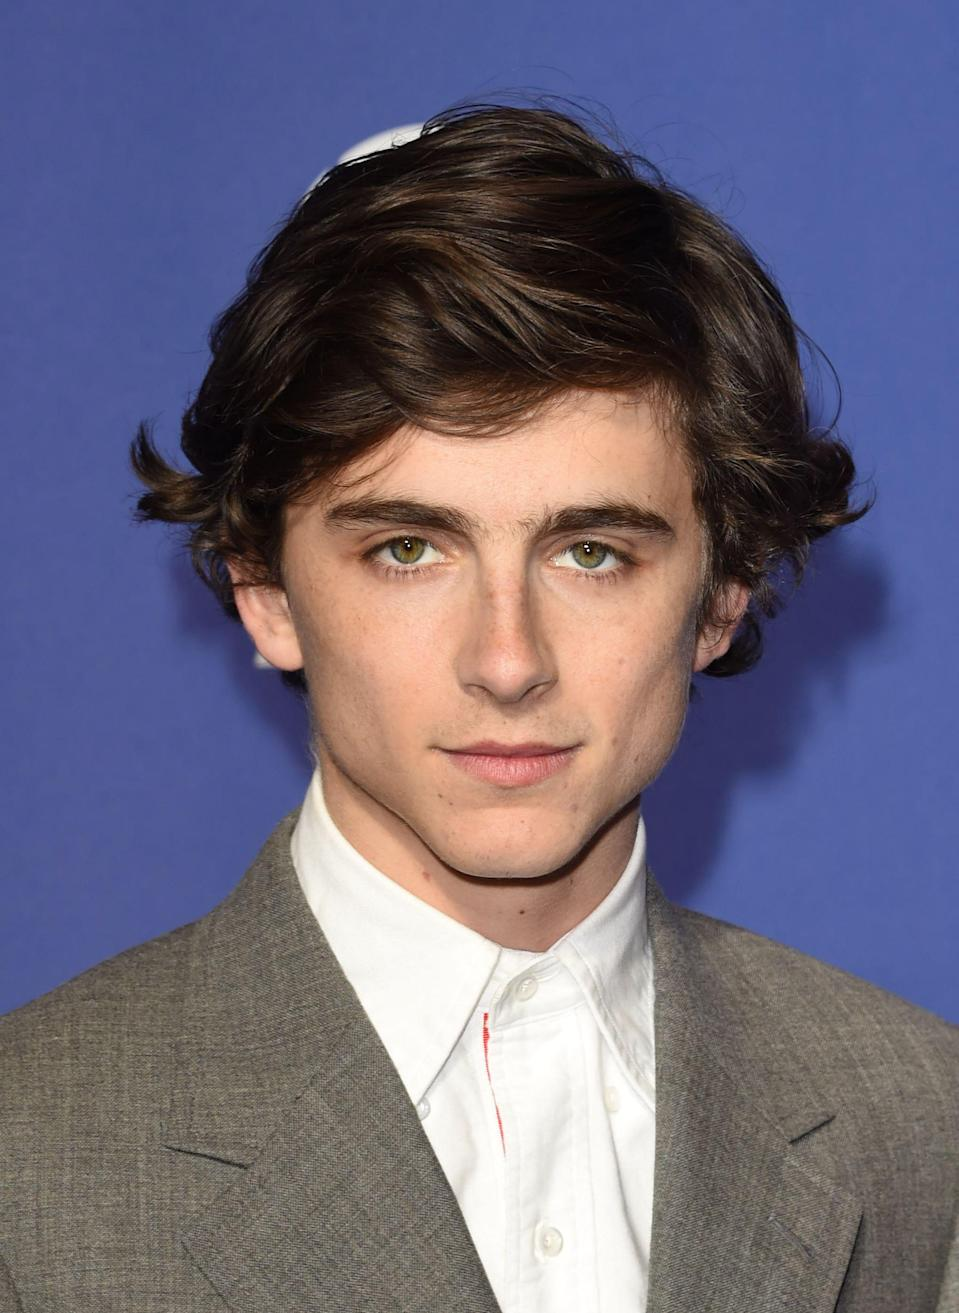 """<p><strong><em>The King</em></strong><br>TBA</p><p>Timothée Chalamet fans and English majors, get excited for this one: Chalamet stars as <a href=""""https://www.refinery29.com/en-us/2018/02/190434/timothee-chalamet-the-king-netflix-movie-henry-v"""" rel=""""nofollow noopener"""" target=""""_blank"""" data-ylk=""""slk:King Henry V"""" class=""""link rapid-noclick-resp"""">King Henry V</a> — known to his friends as Hal — in this Netflix period drama. After his brother is unexpectedly killed, Hal ends up on the throne in his early 20s. He faces a tough transition from wayward prince to king. Chalamet is joined by an exciting cast: Joel Edgerton, Robert Pattinson, Ben Mendelsohn, and Lily-Rose Depp.</p>"""